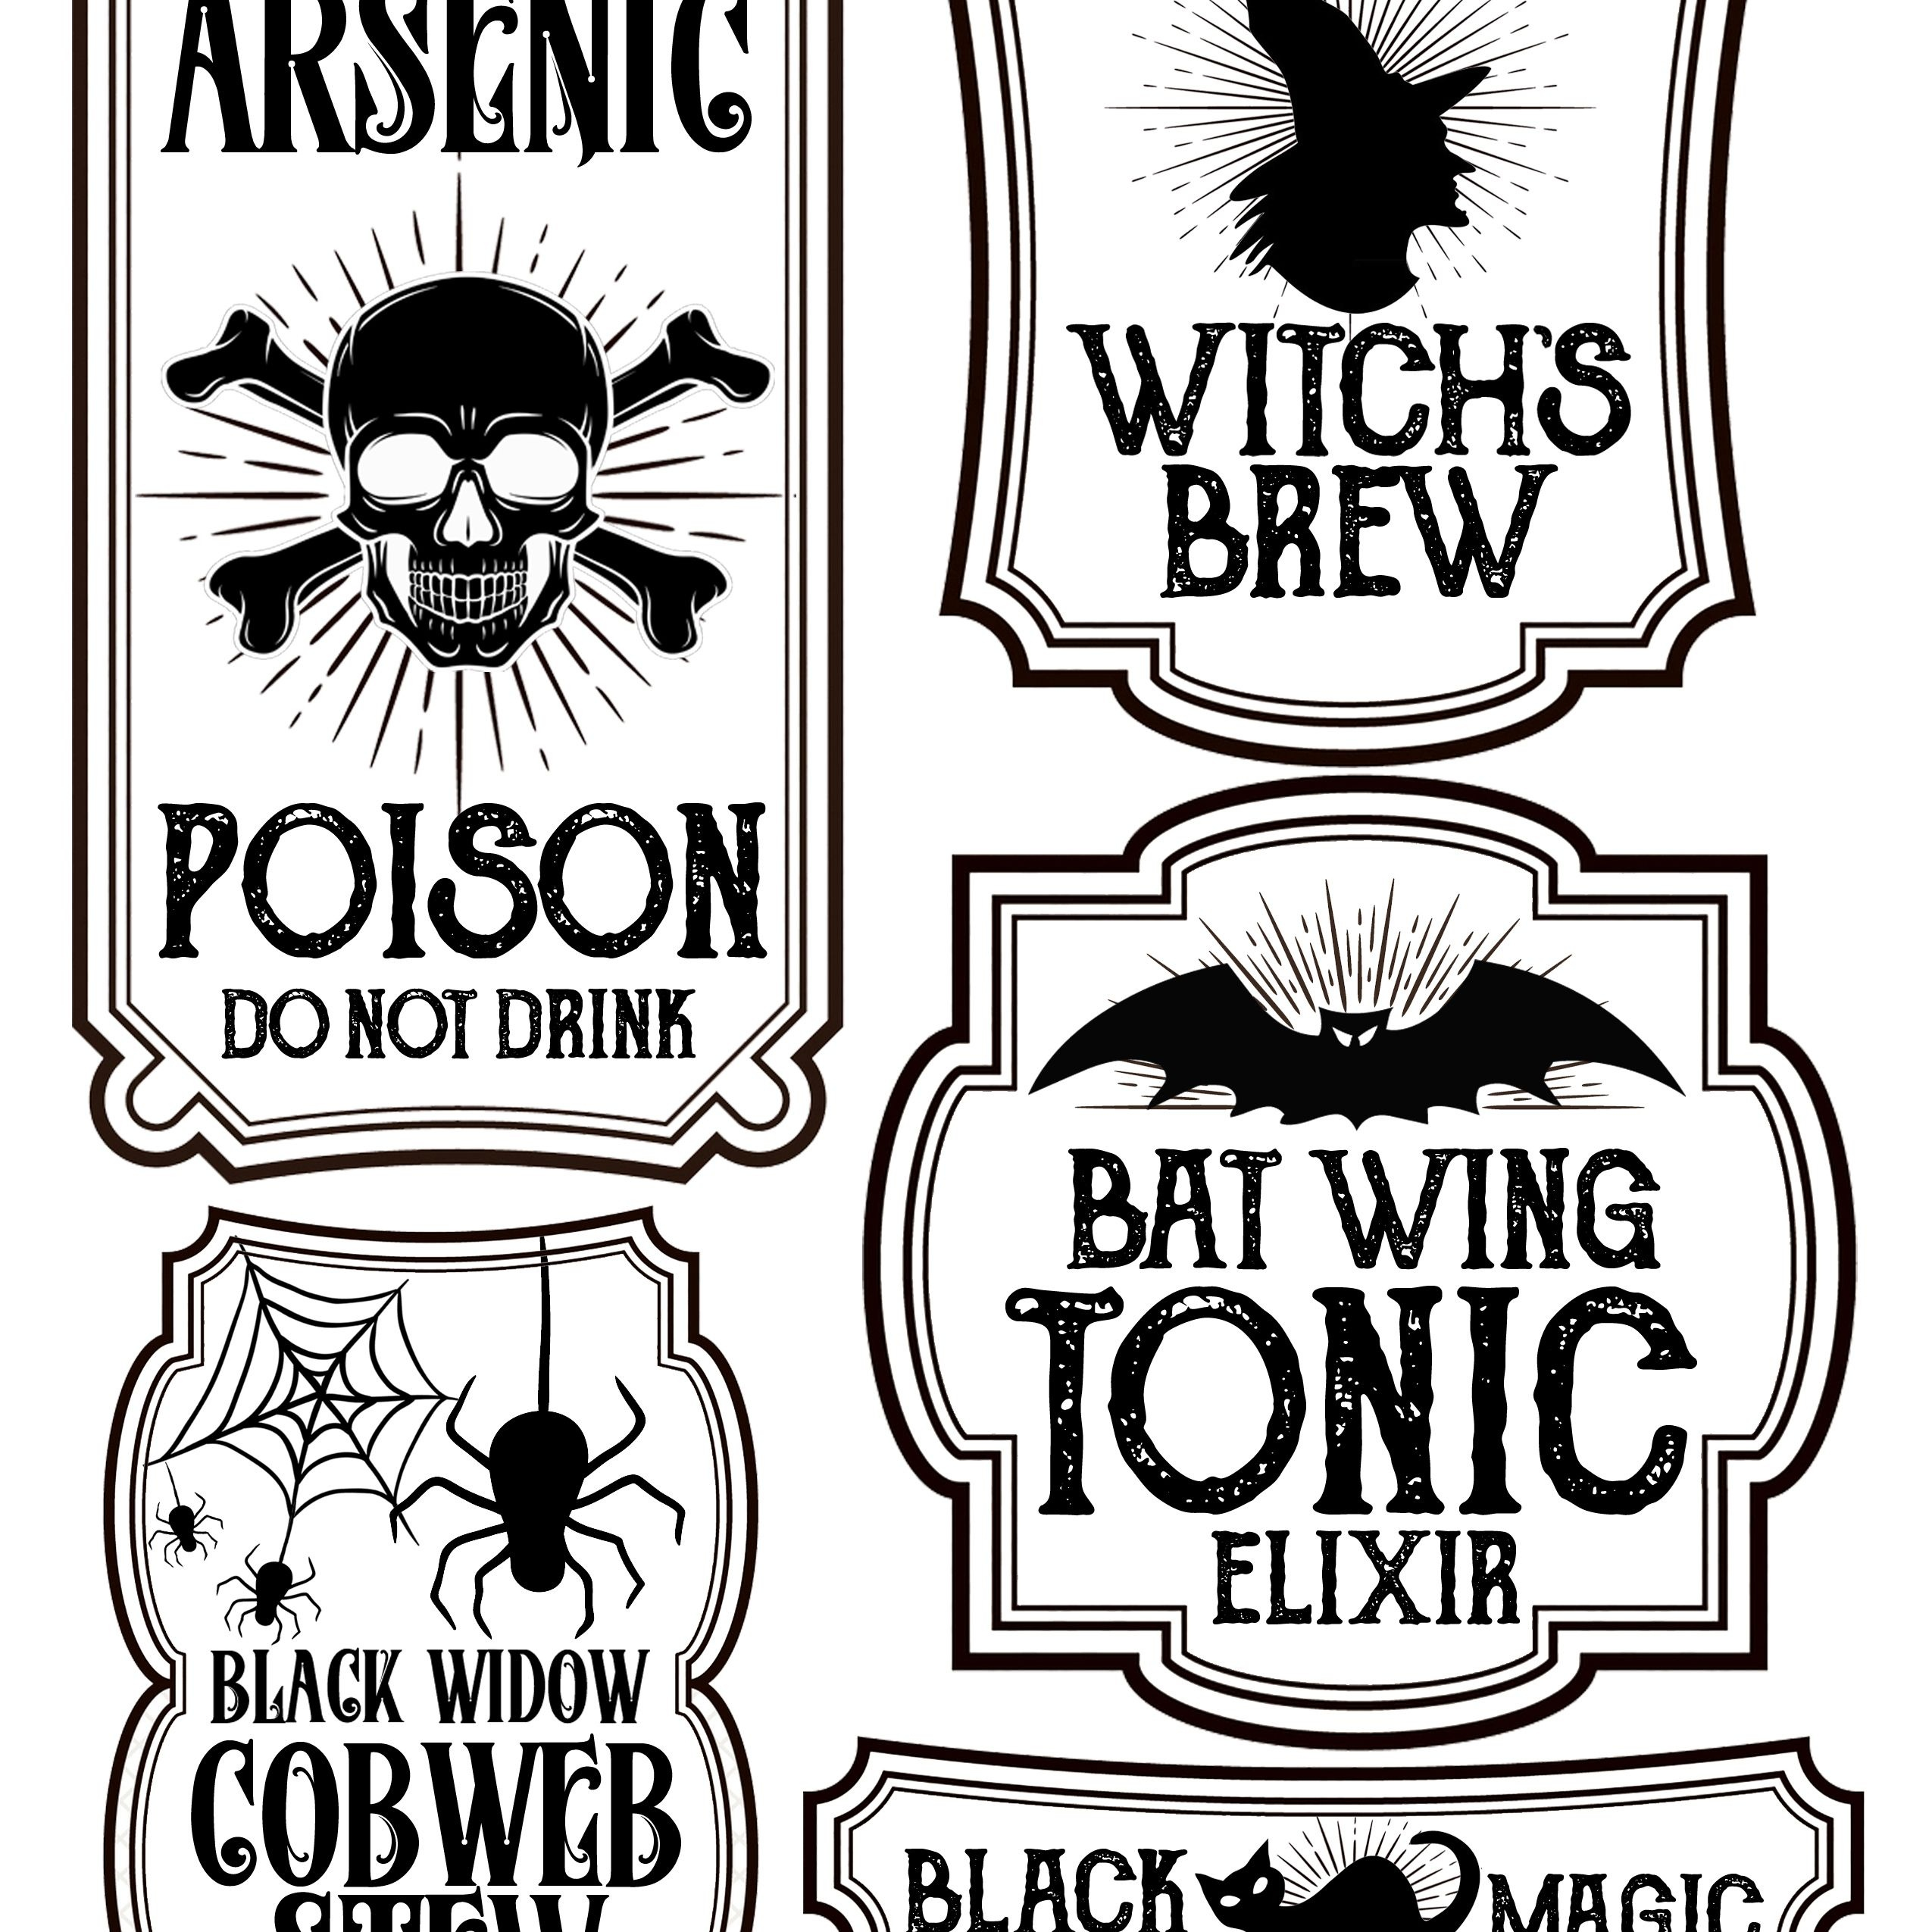 Halloween Bottle Labels - Free Printables - Potions Labels | Art - Free Printable Halloween Bottle Labels